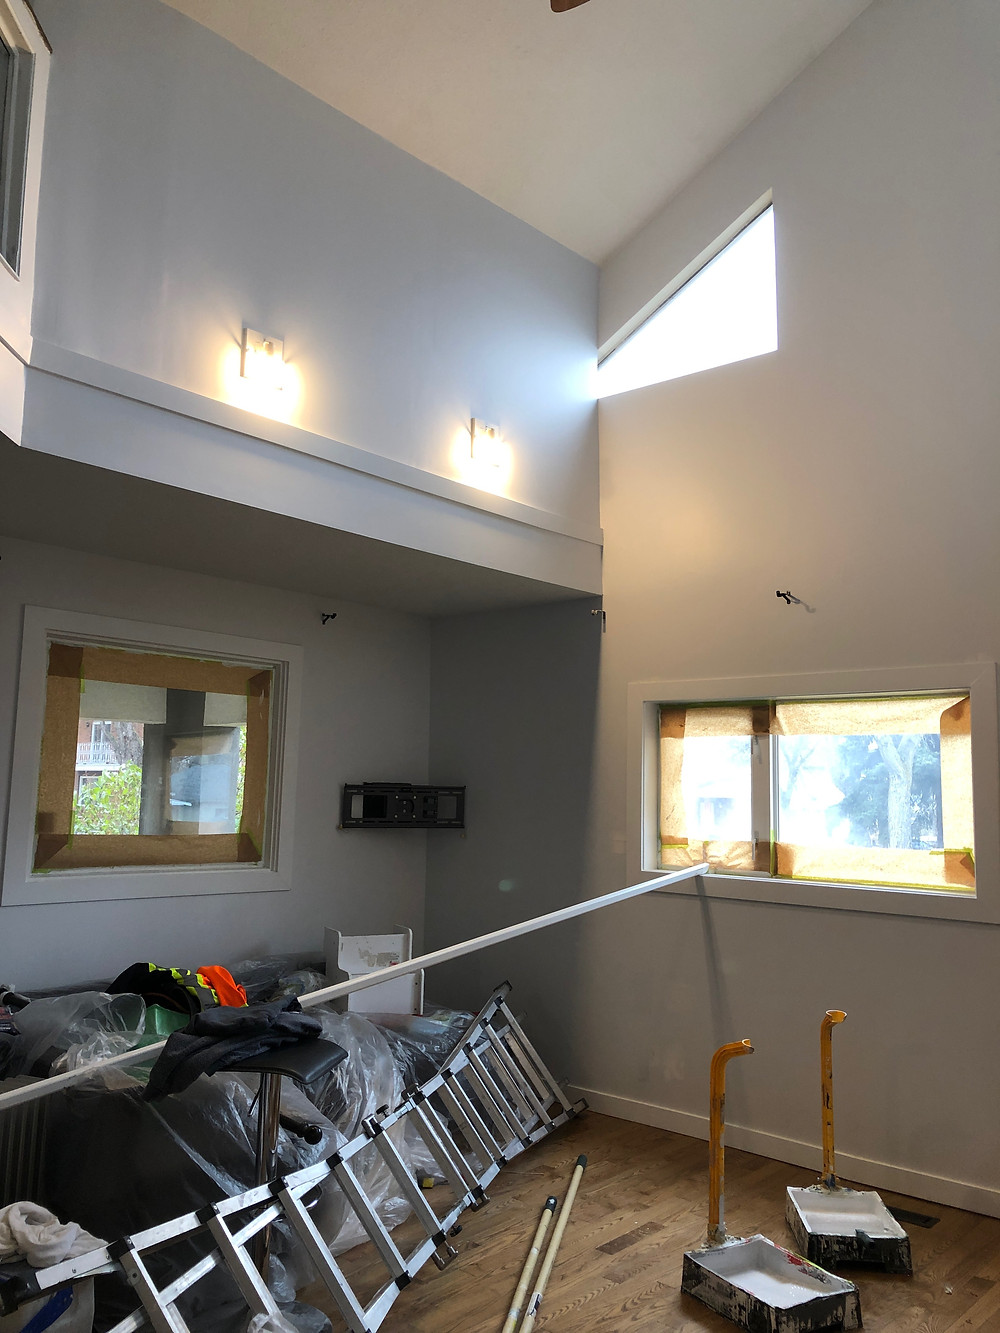 Preparation work for Mill Creek Painters painting contractors in a room with tall ceilings in Edmonton